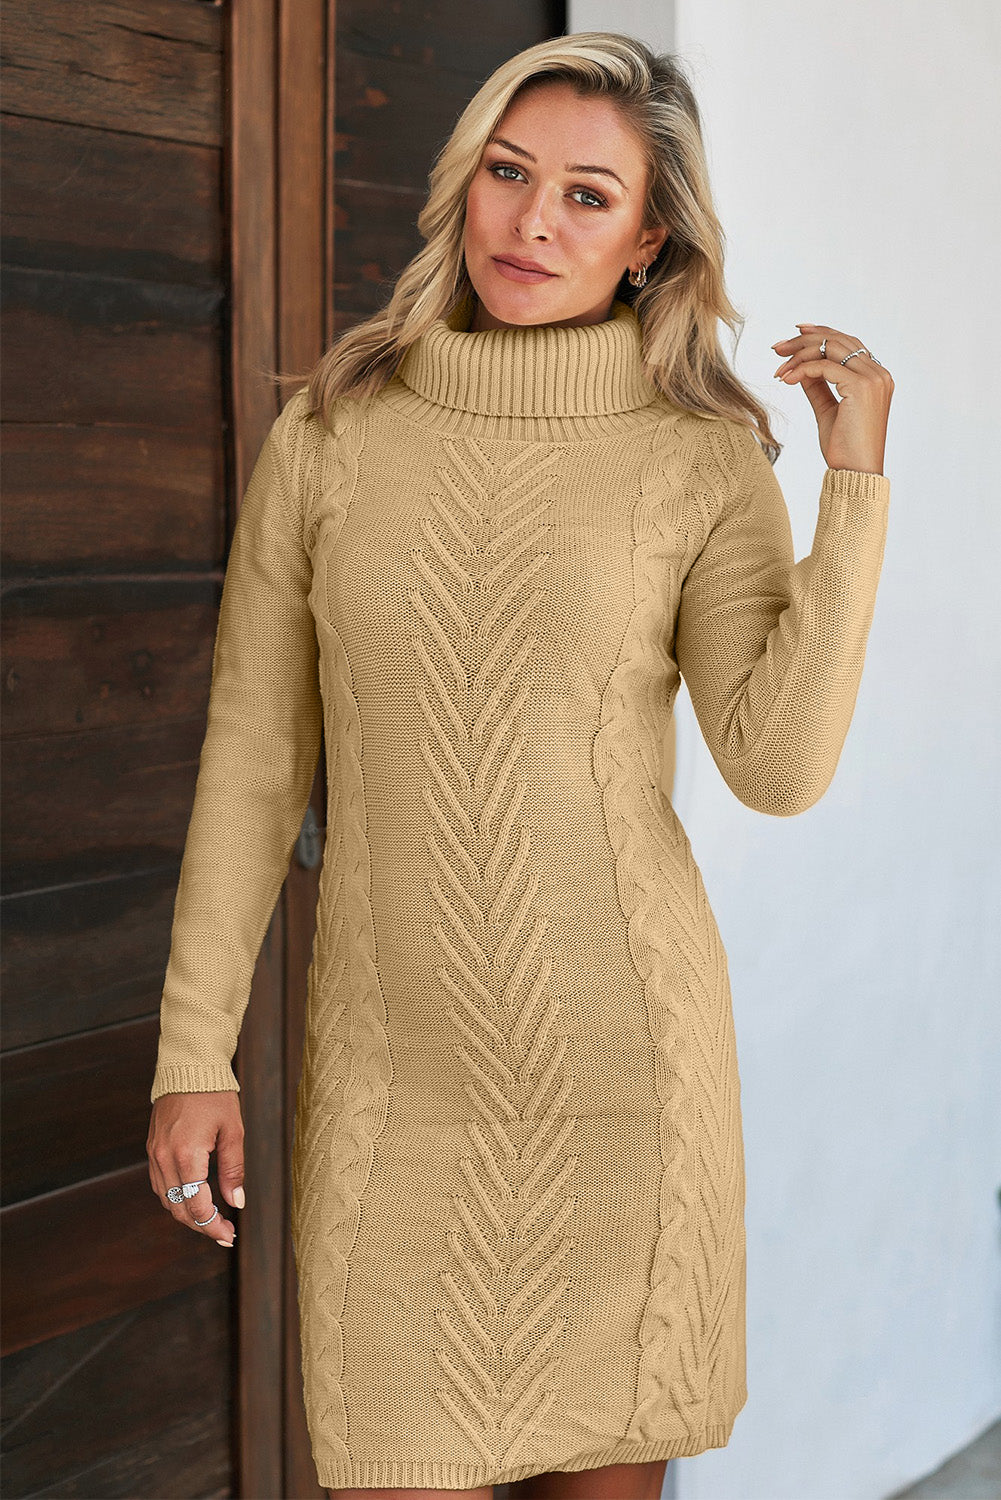 Khaki Hand Knitted High Neck Sweater Dress